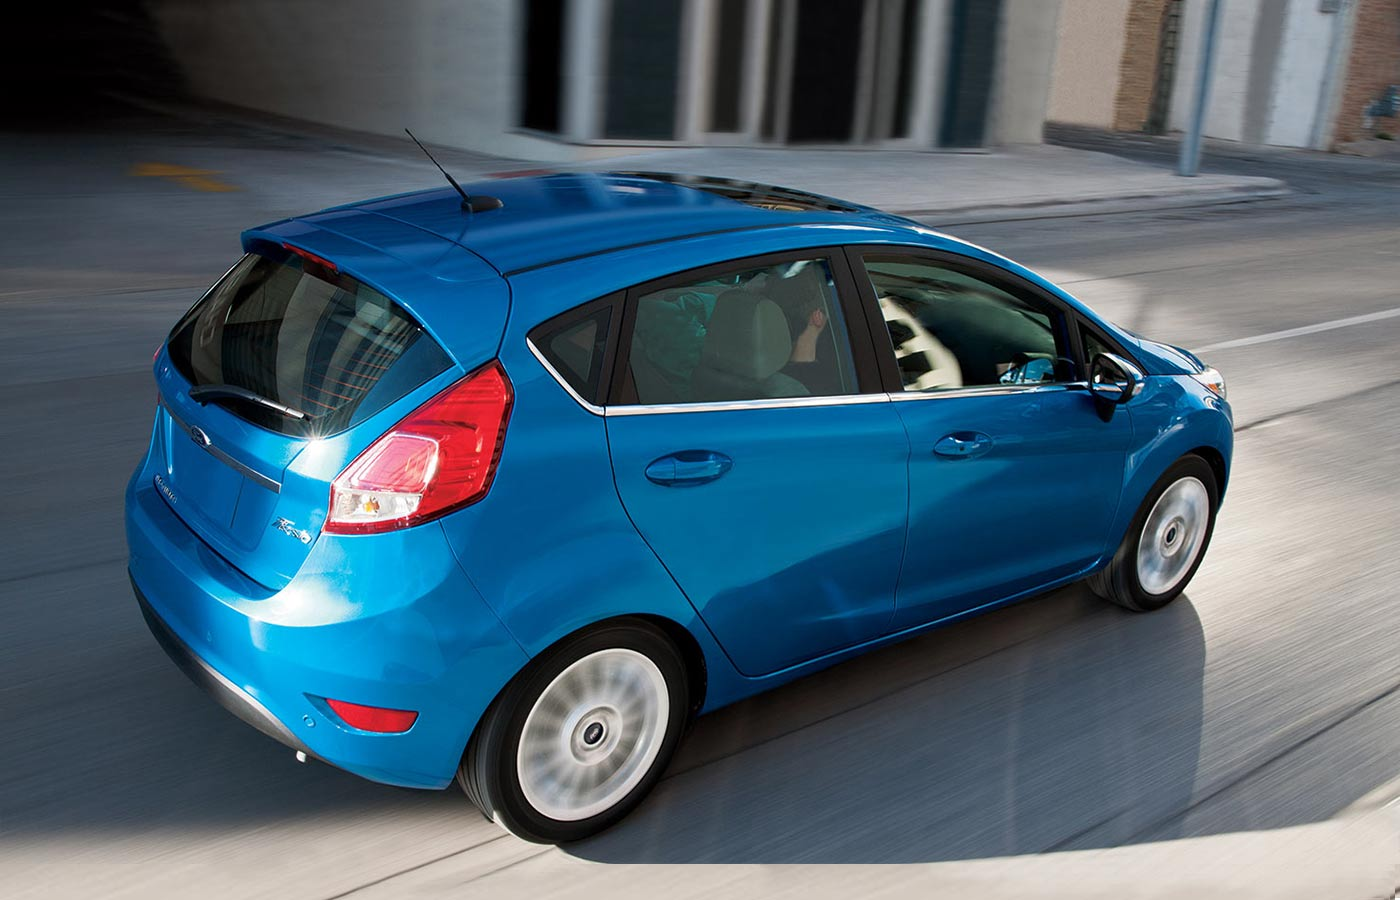 New ford fiesta exterior main image